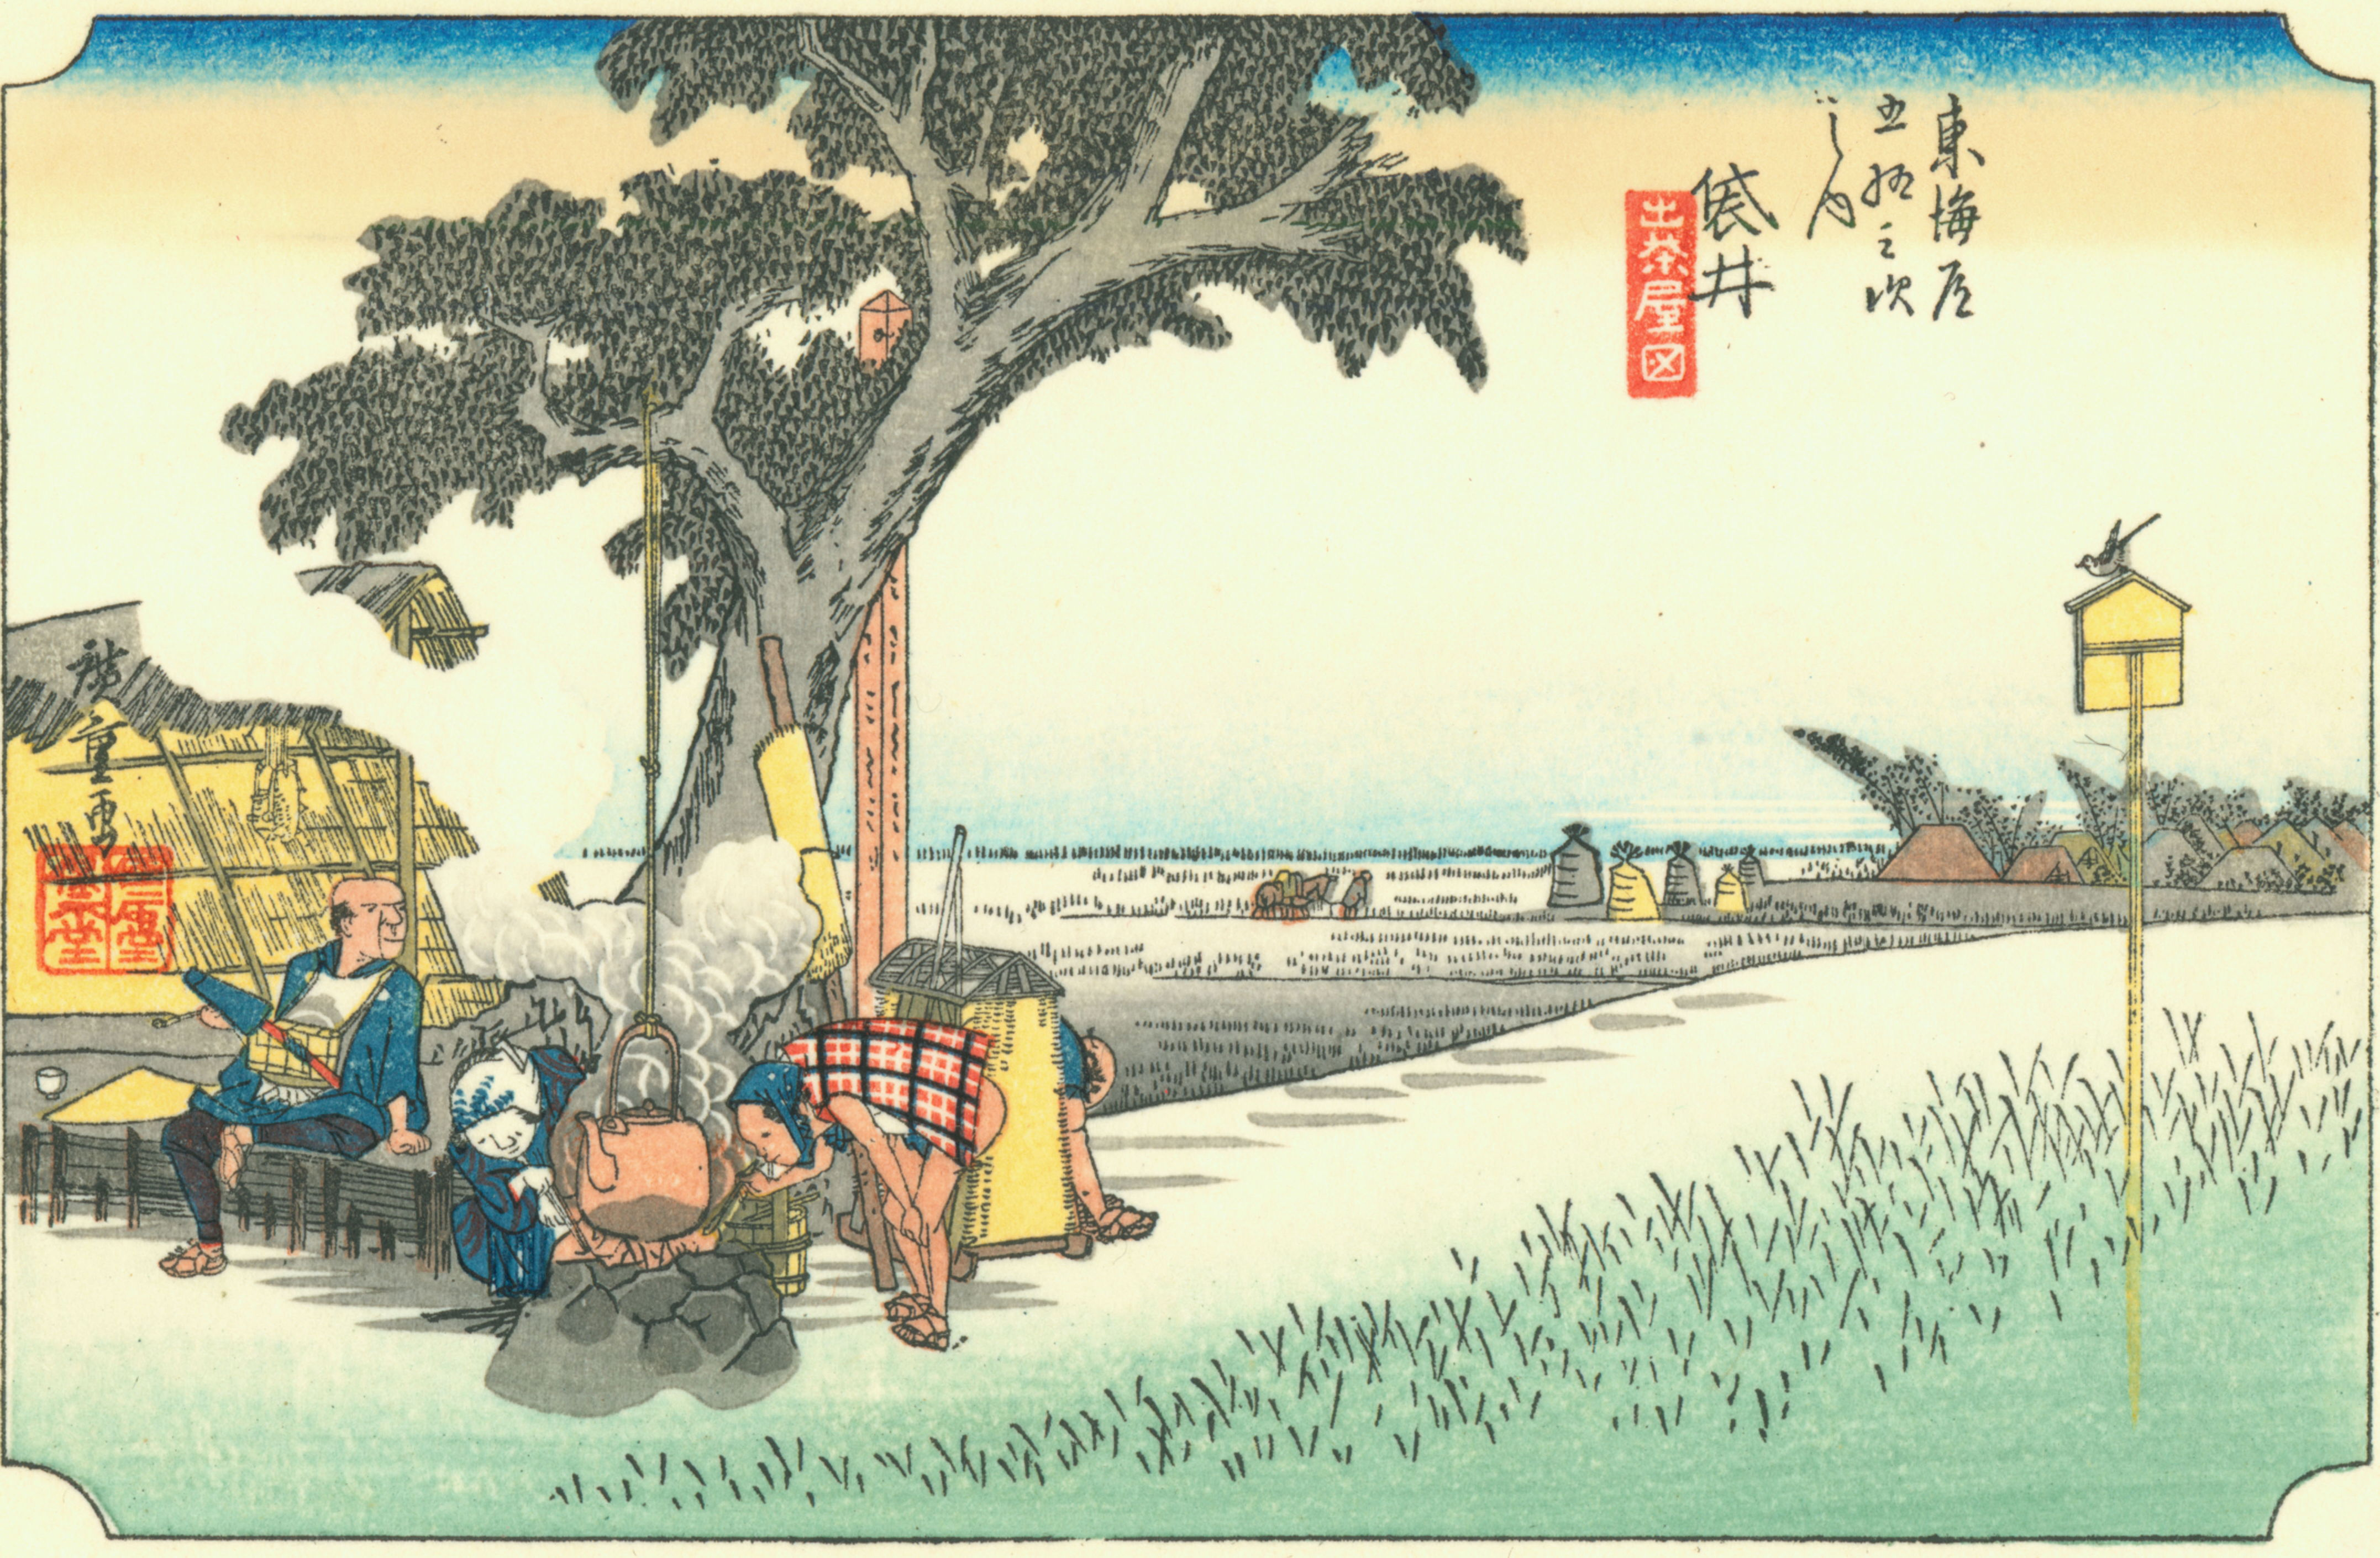 https://upload.wikimedia.org/wikipedia/commons/7/7f/Hiroshige28_fukuroi.jpg